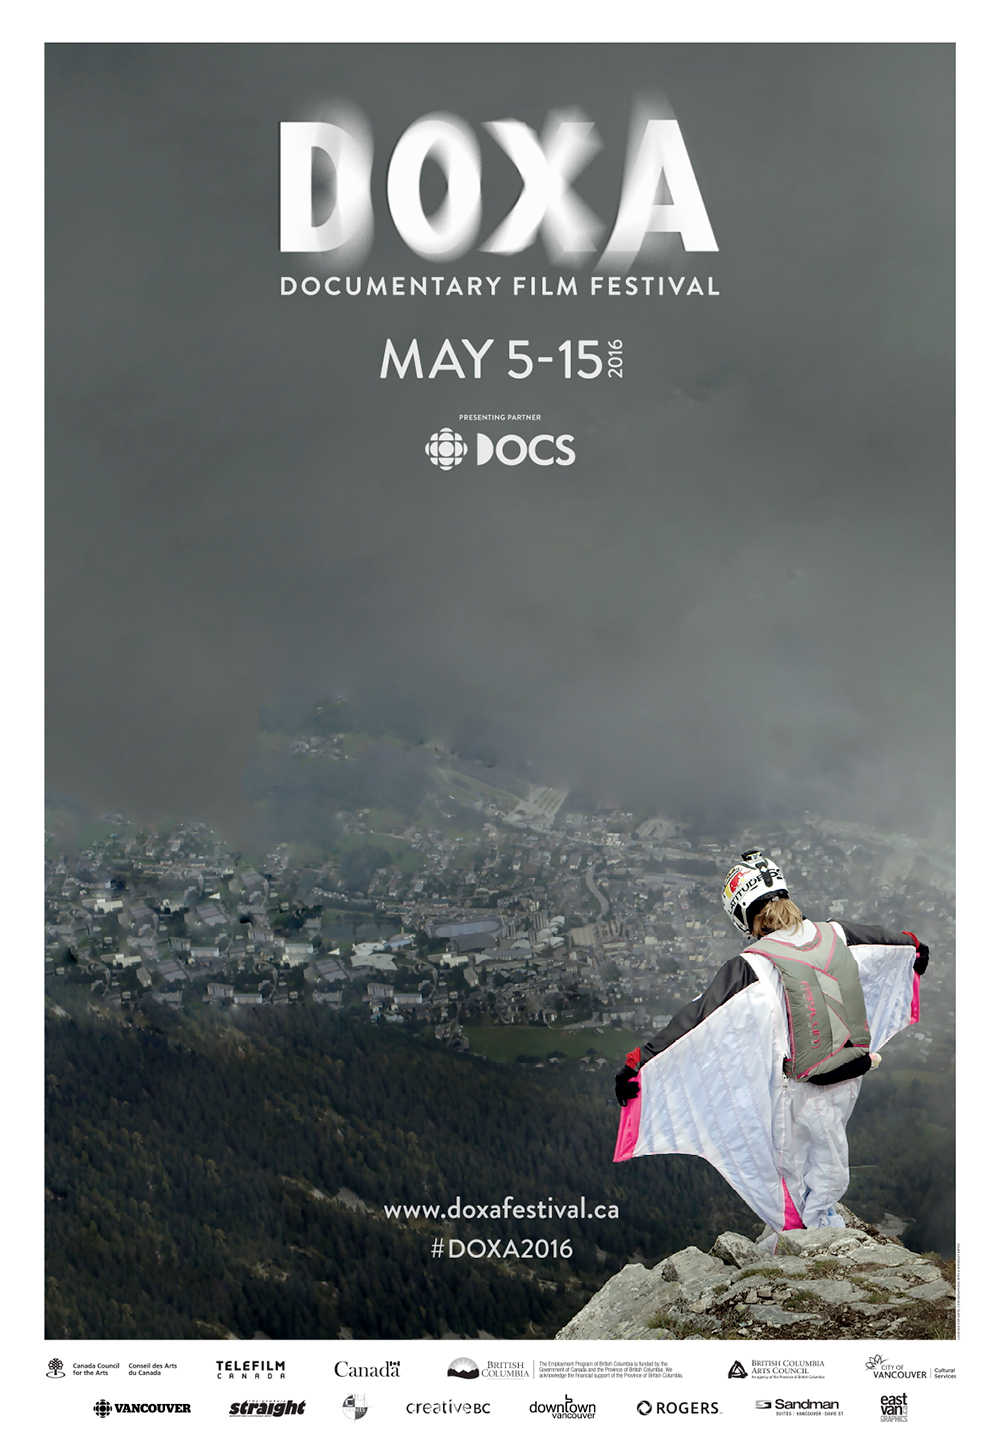 DOXA Documentary Film Festival 2016 Poster